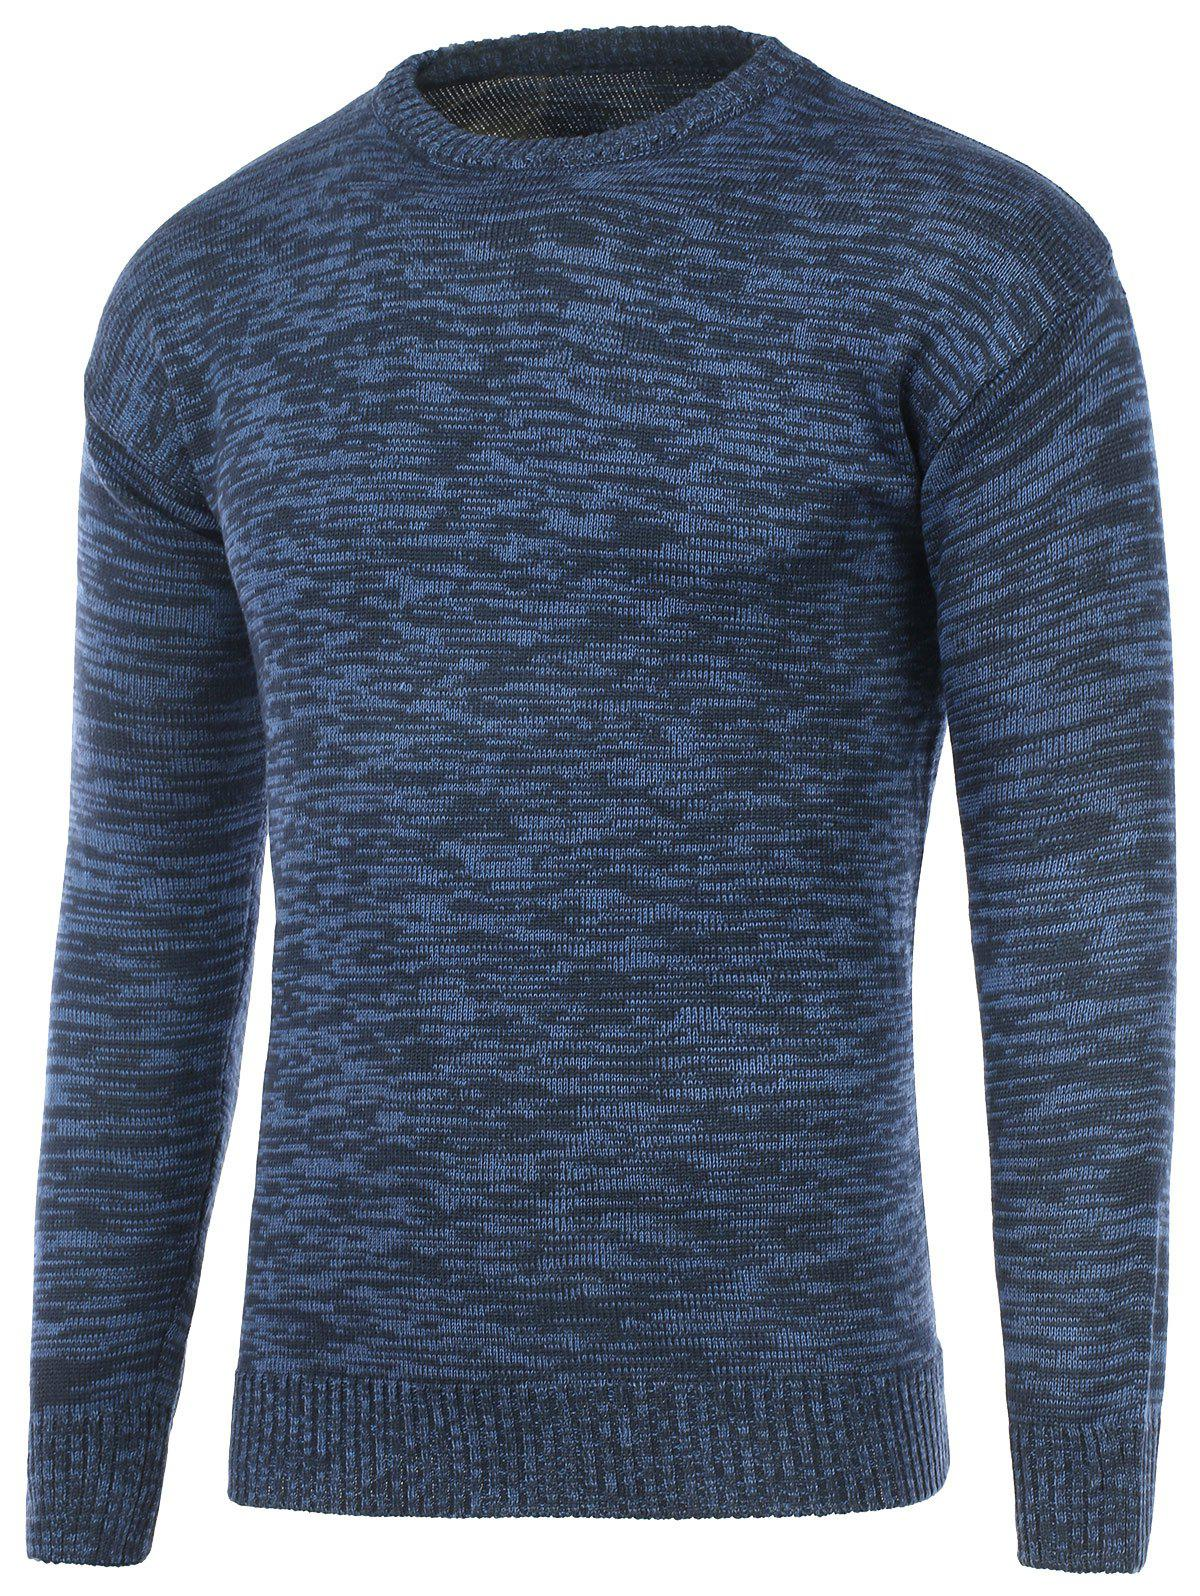 Space Dye Crew Neck Pullover Sweater slim fit crew neck space dye sweater